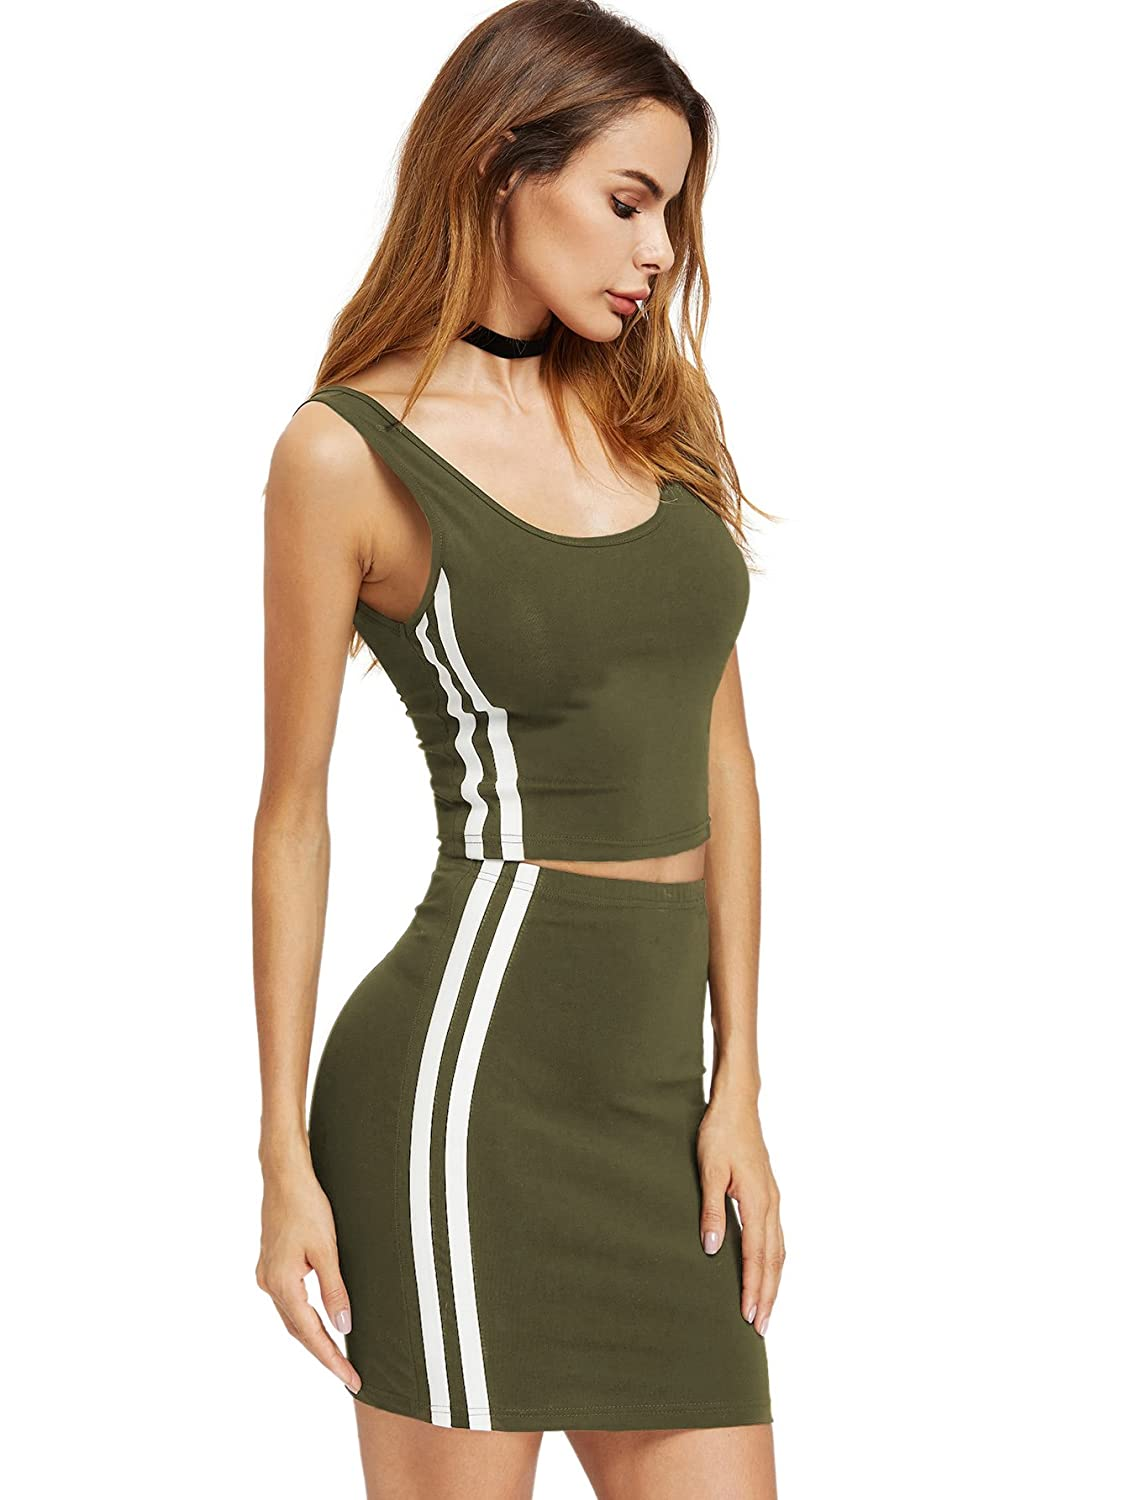 9ff026ea47 Romwe Women's 2 Piece Crop Tank Top with Skirt Set Sleeveless Bodycon Mini  Dress at Amazon Women's Clothing store: